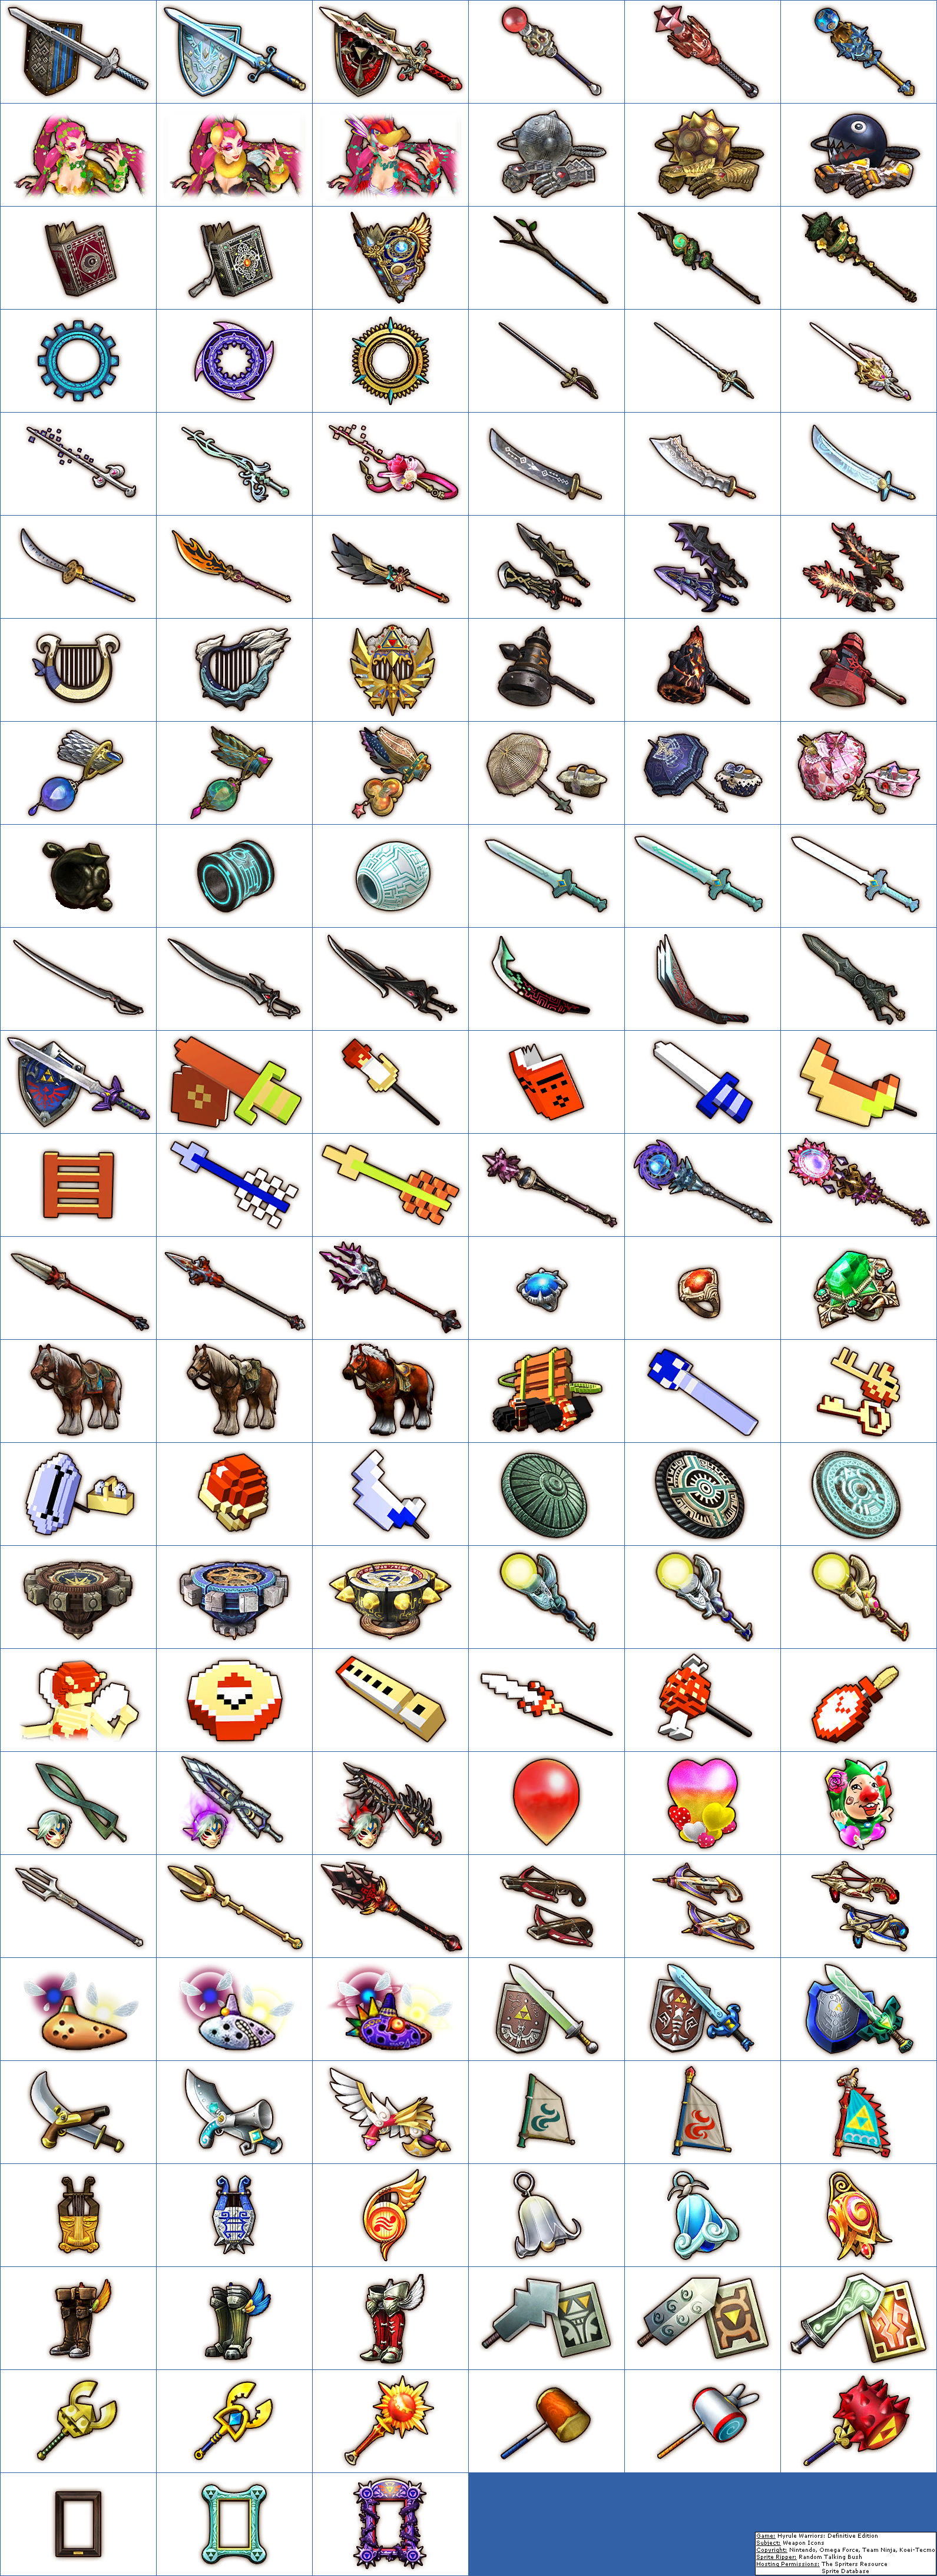 Nintendo Switch Hyrule Warriors Definitive Edition Weapon Icons The Spriters Resource